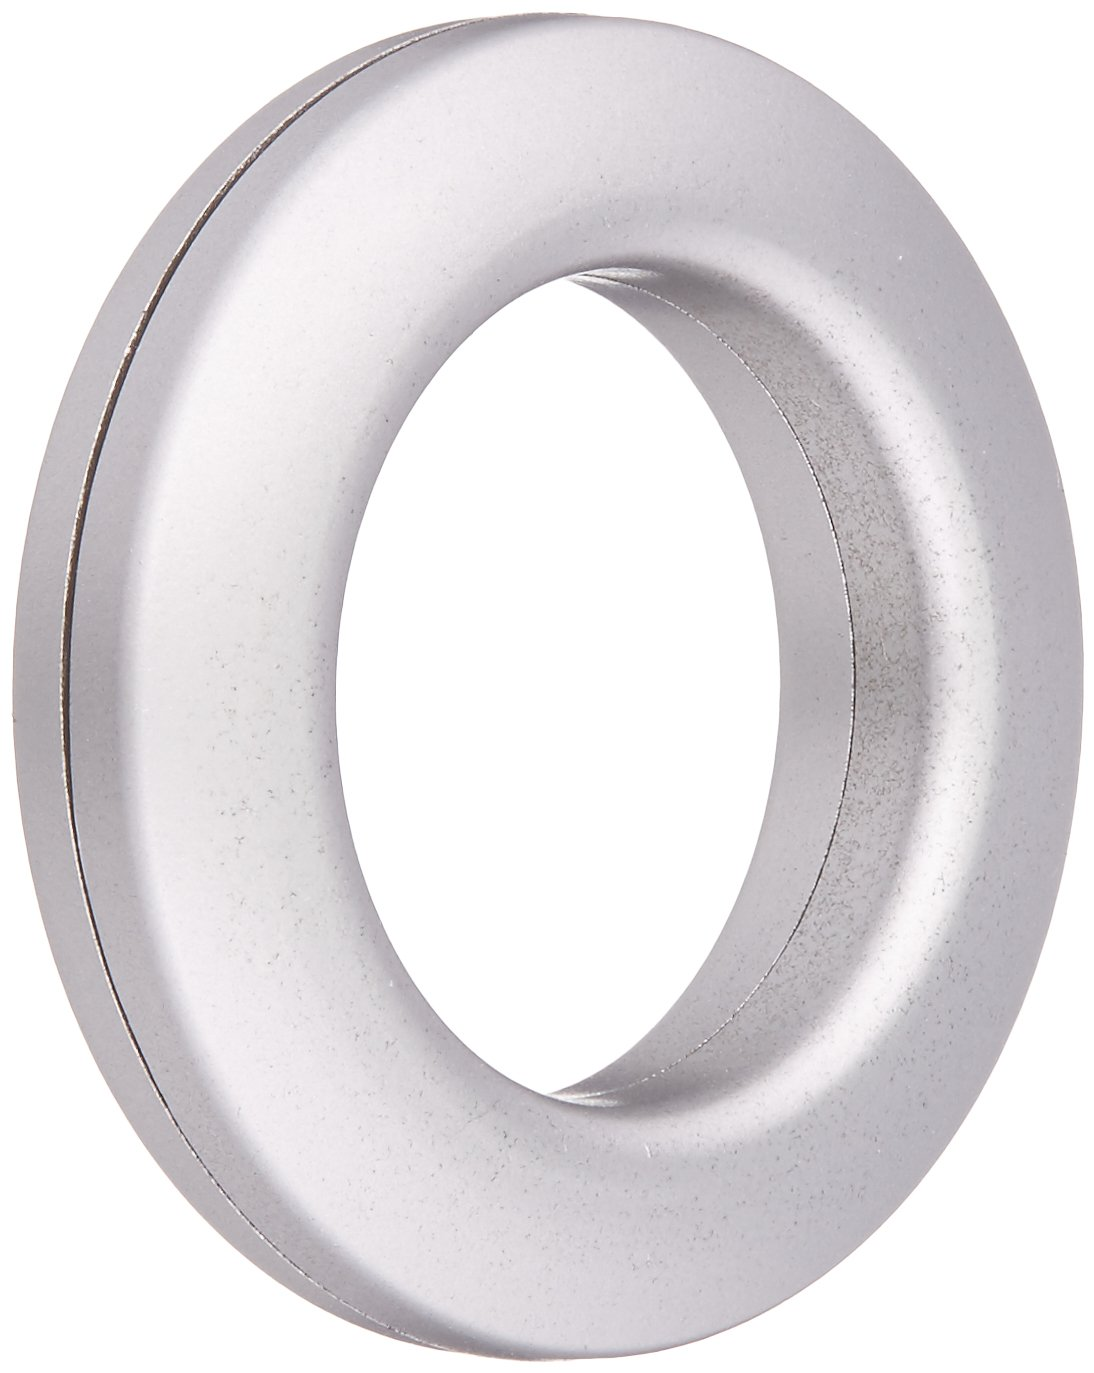 Curtain Grommets Dyi Curtains Grommets Used For Hanging Up Drapery Koni Shower Curtain